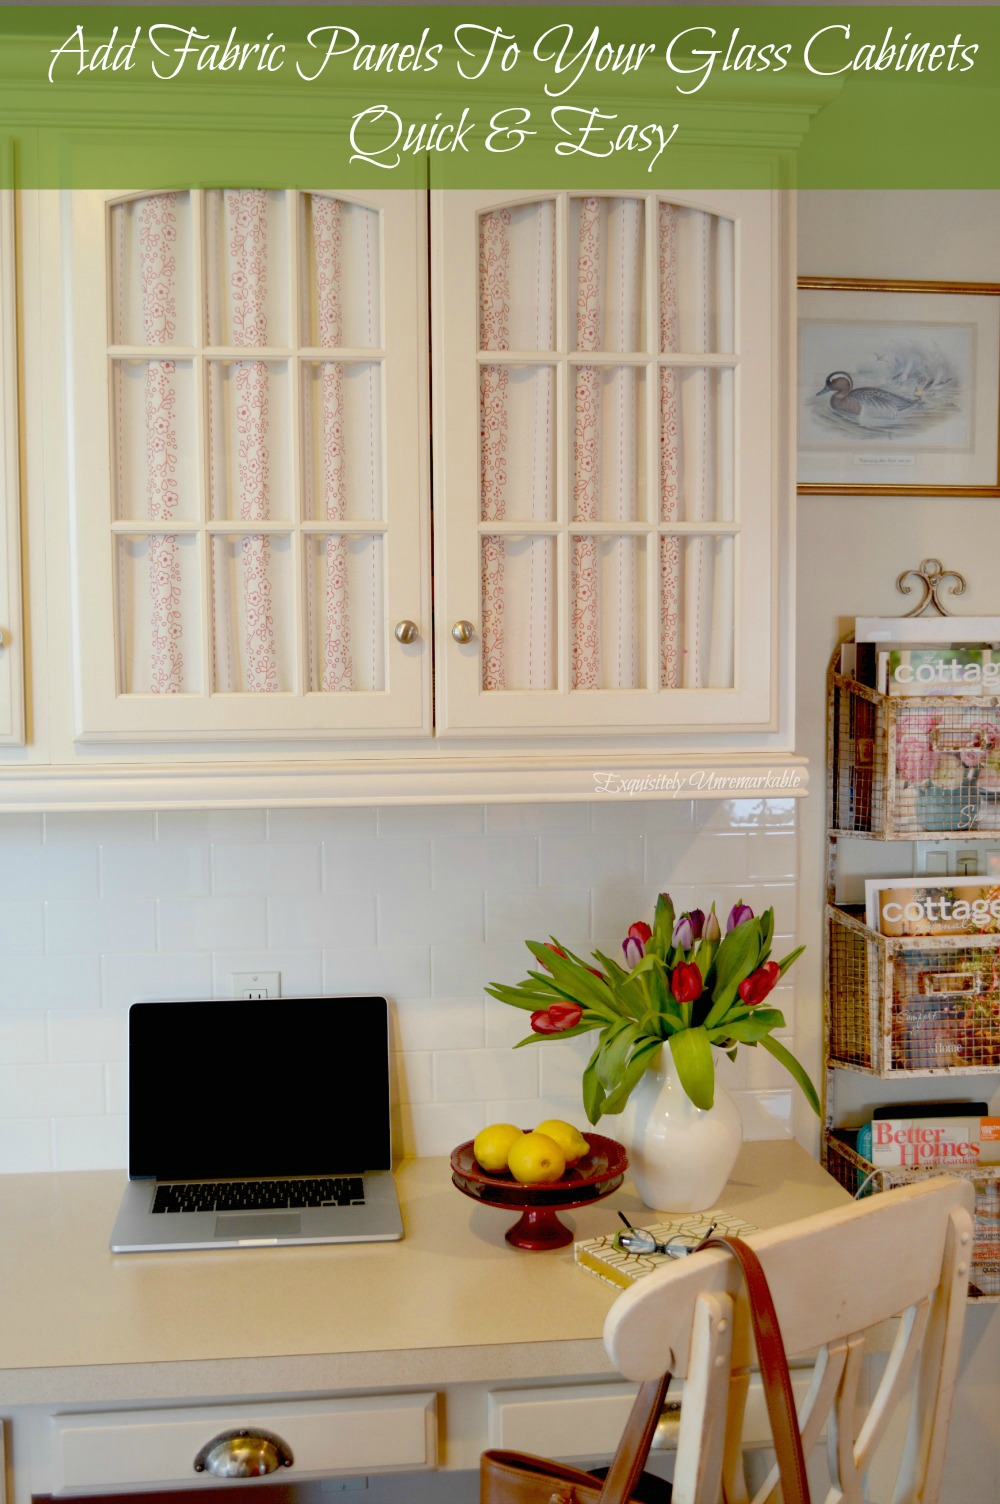 How To Cover Glass Cabinet Doors With Fabric |Exquisitely Unremarkable